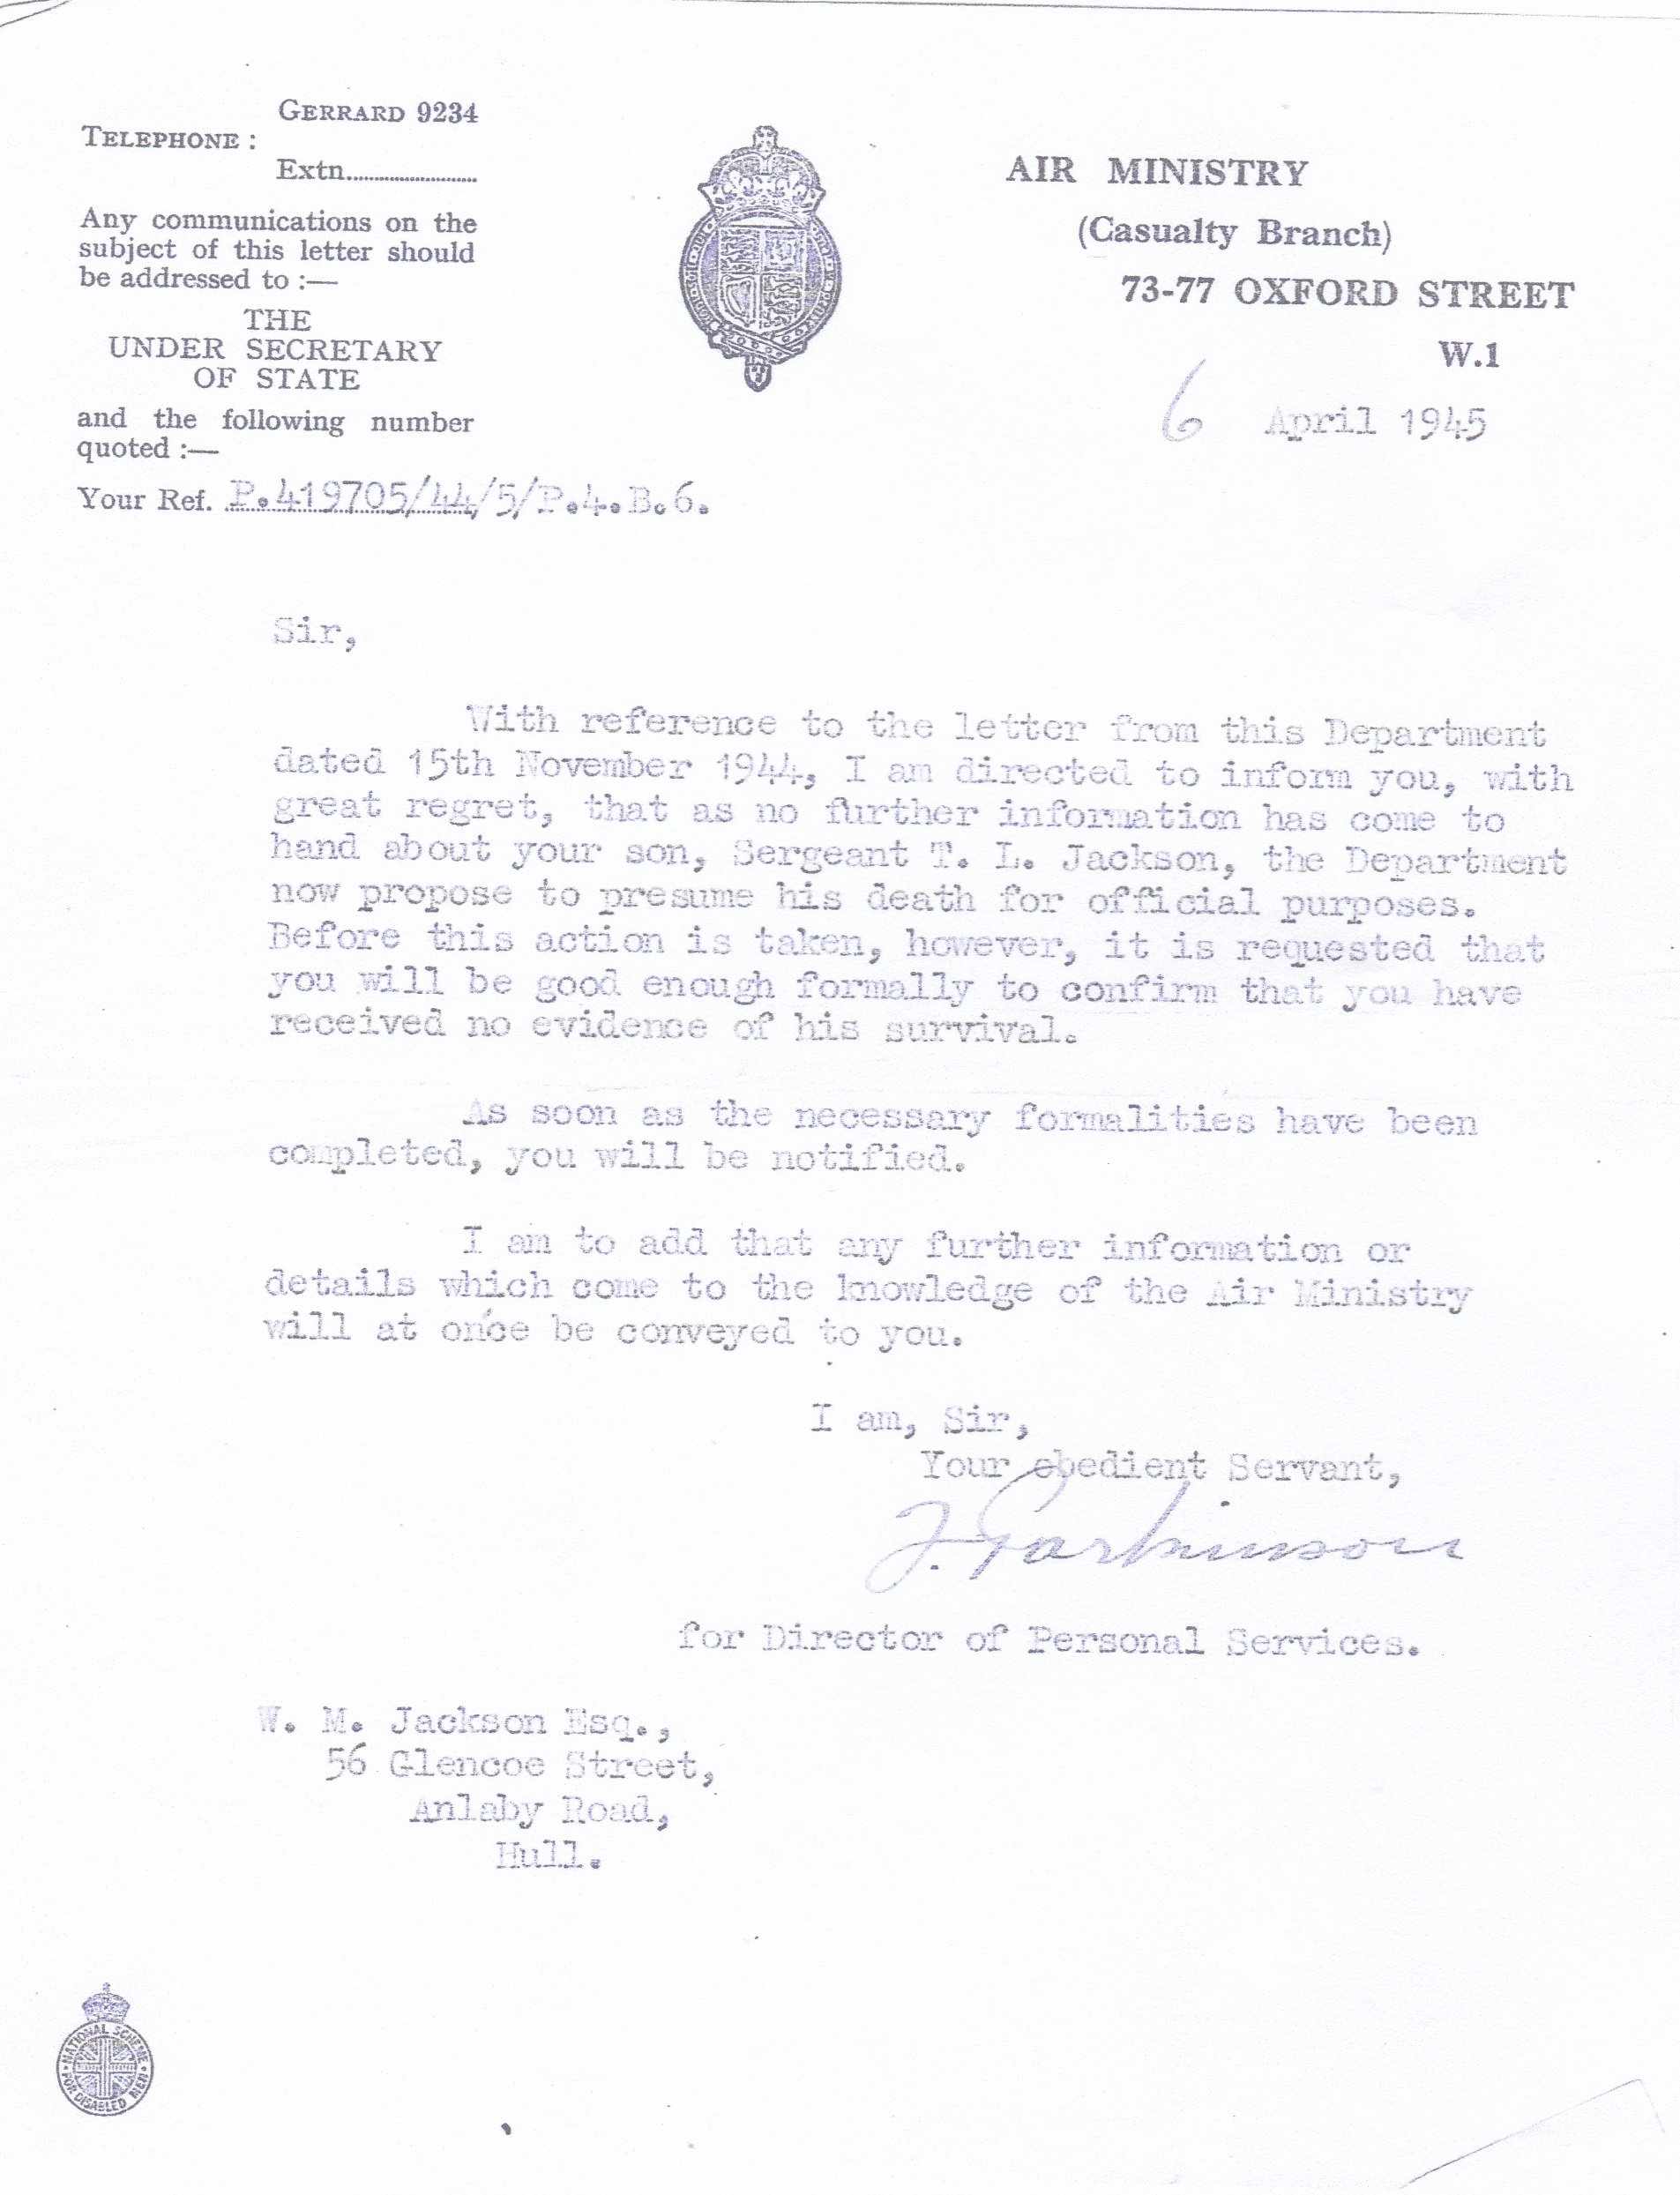 Air Ministry Letter 6th June 1945